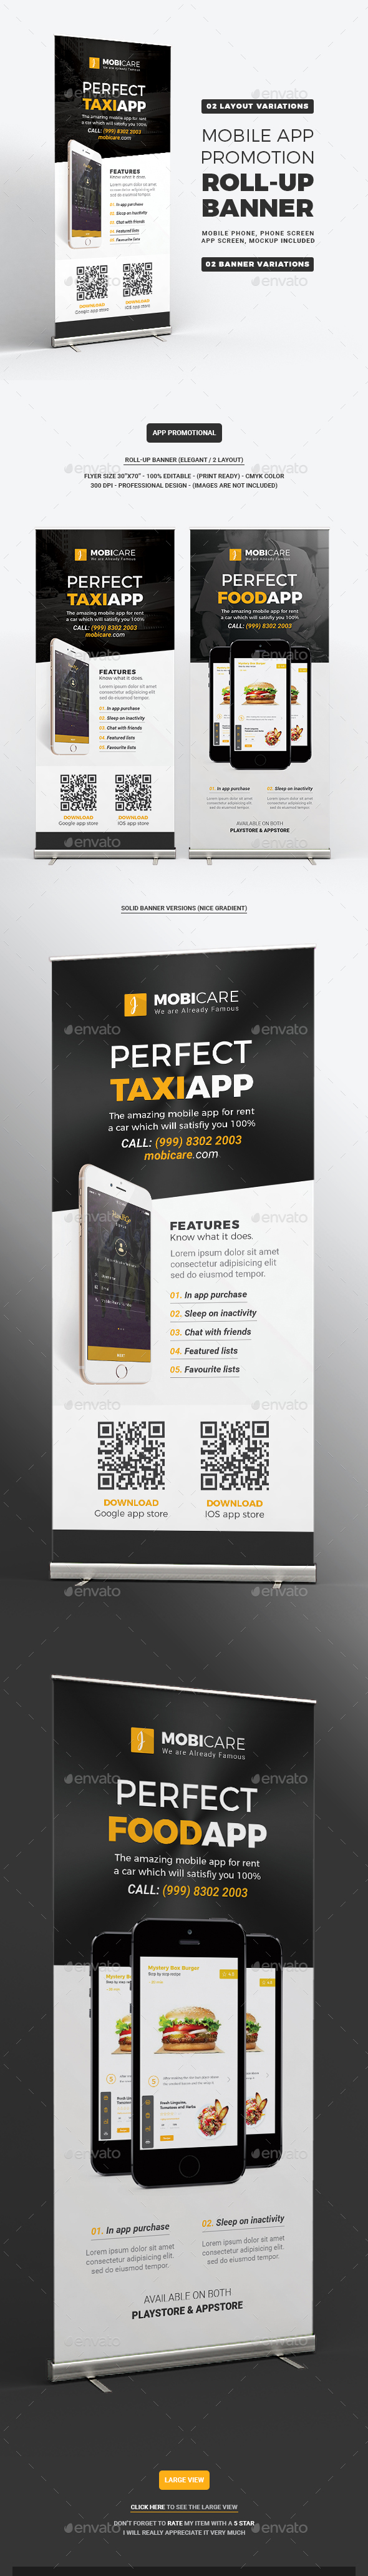 Mobile App Promotion Roll-up Banner - Signage Print Templates